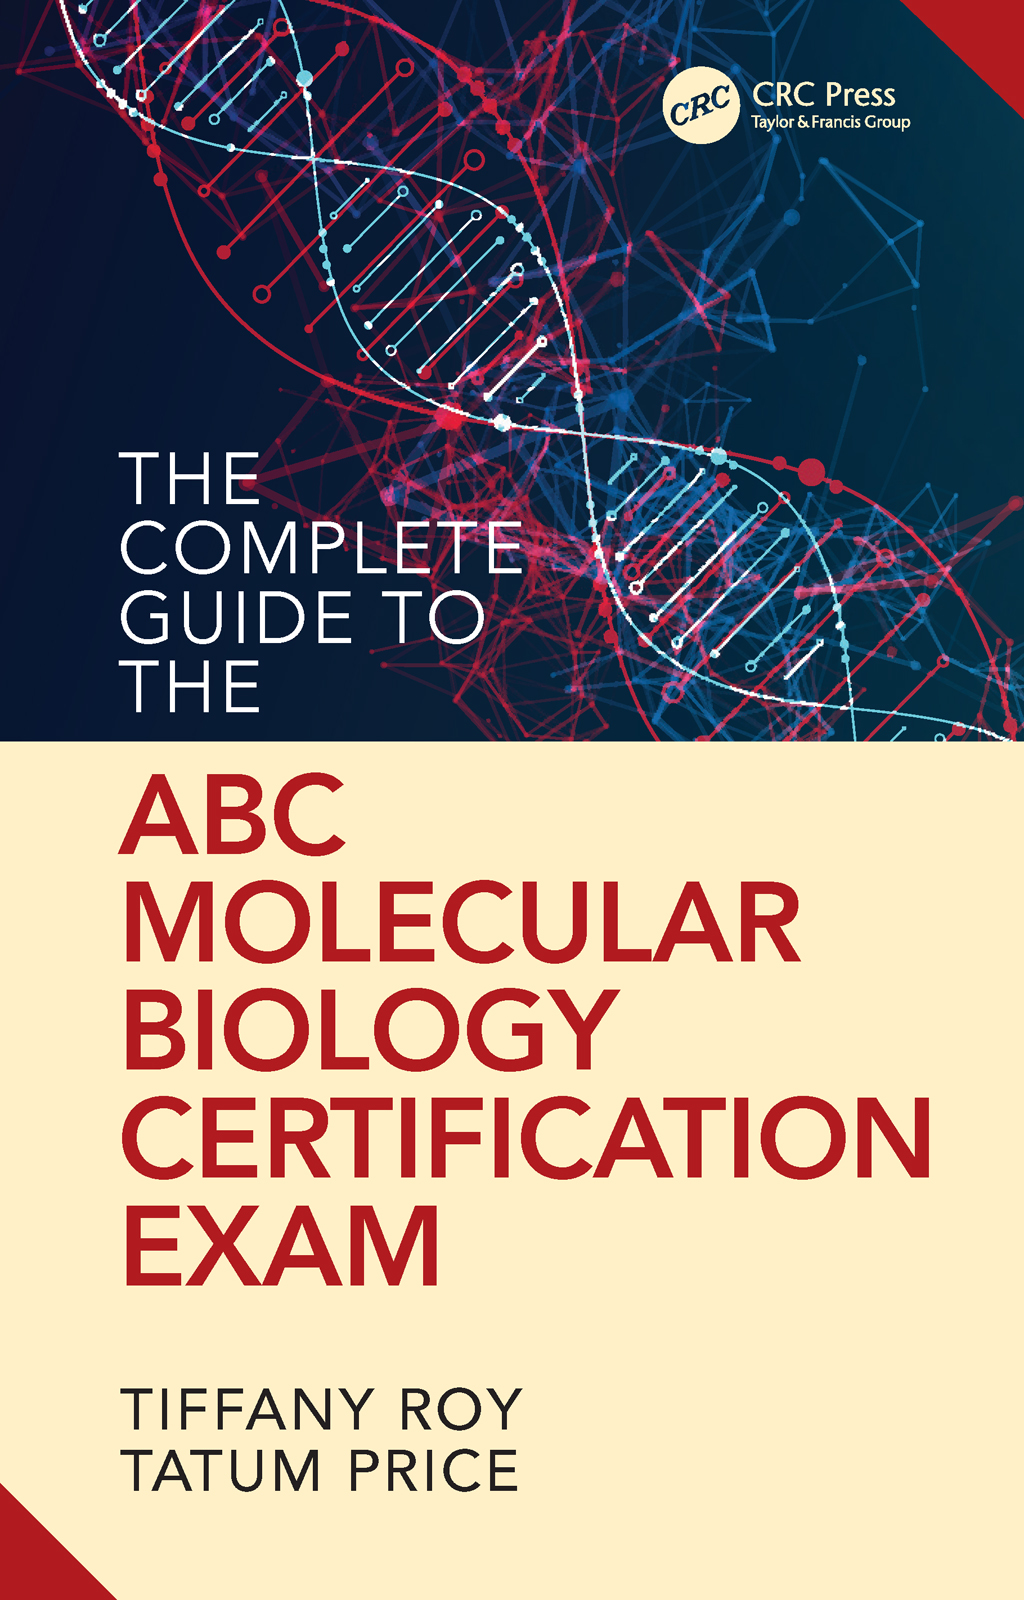 The Complete Guide to the ABC Molecular Biology Certification Exam book cover